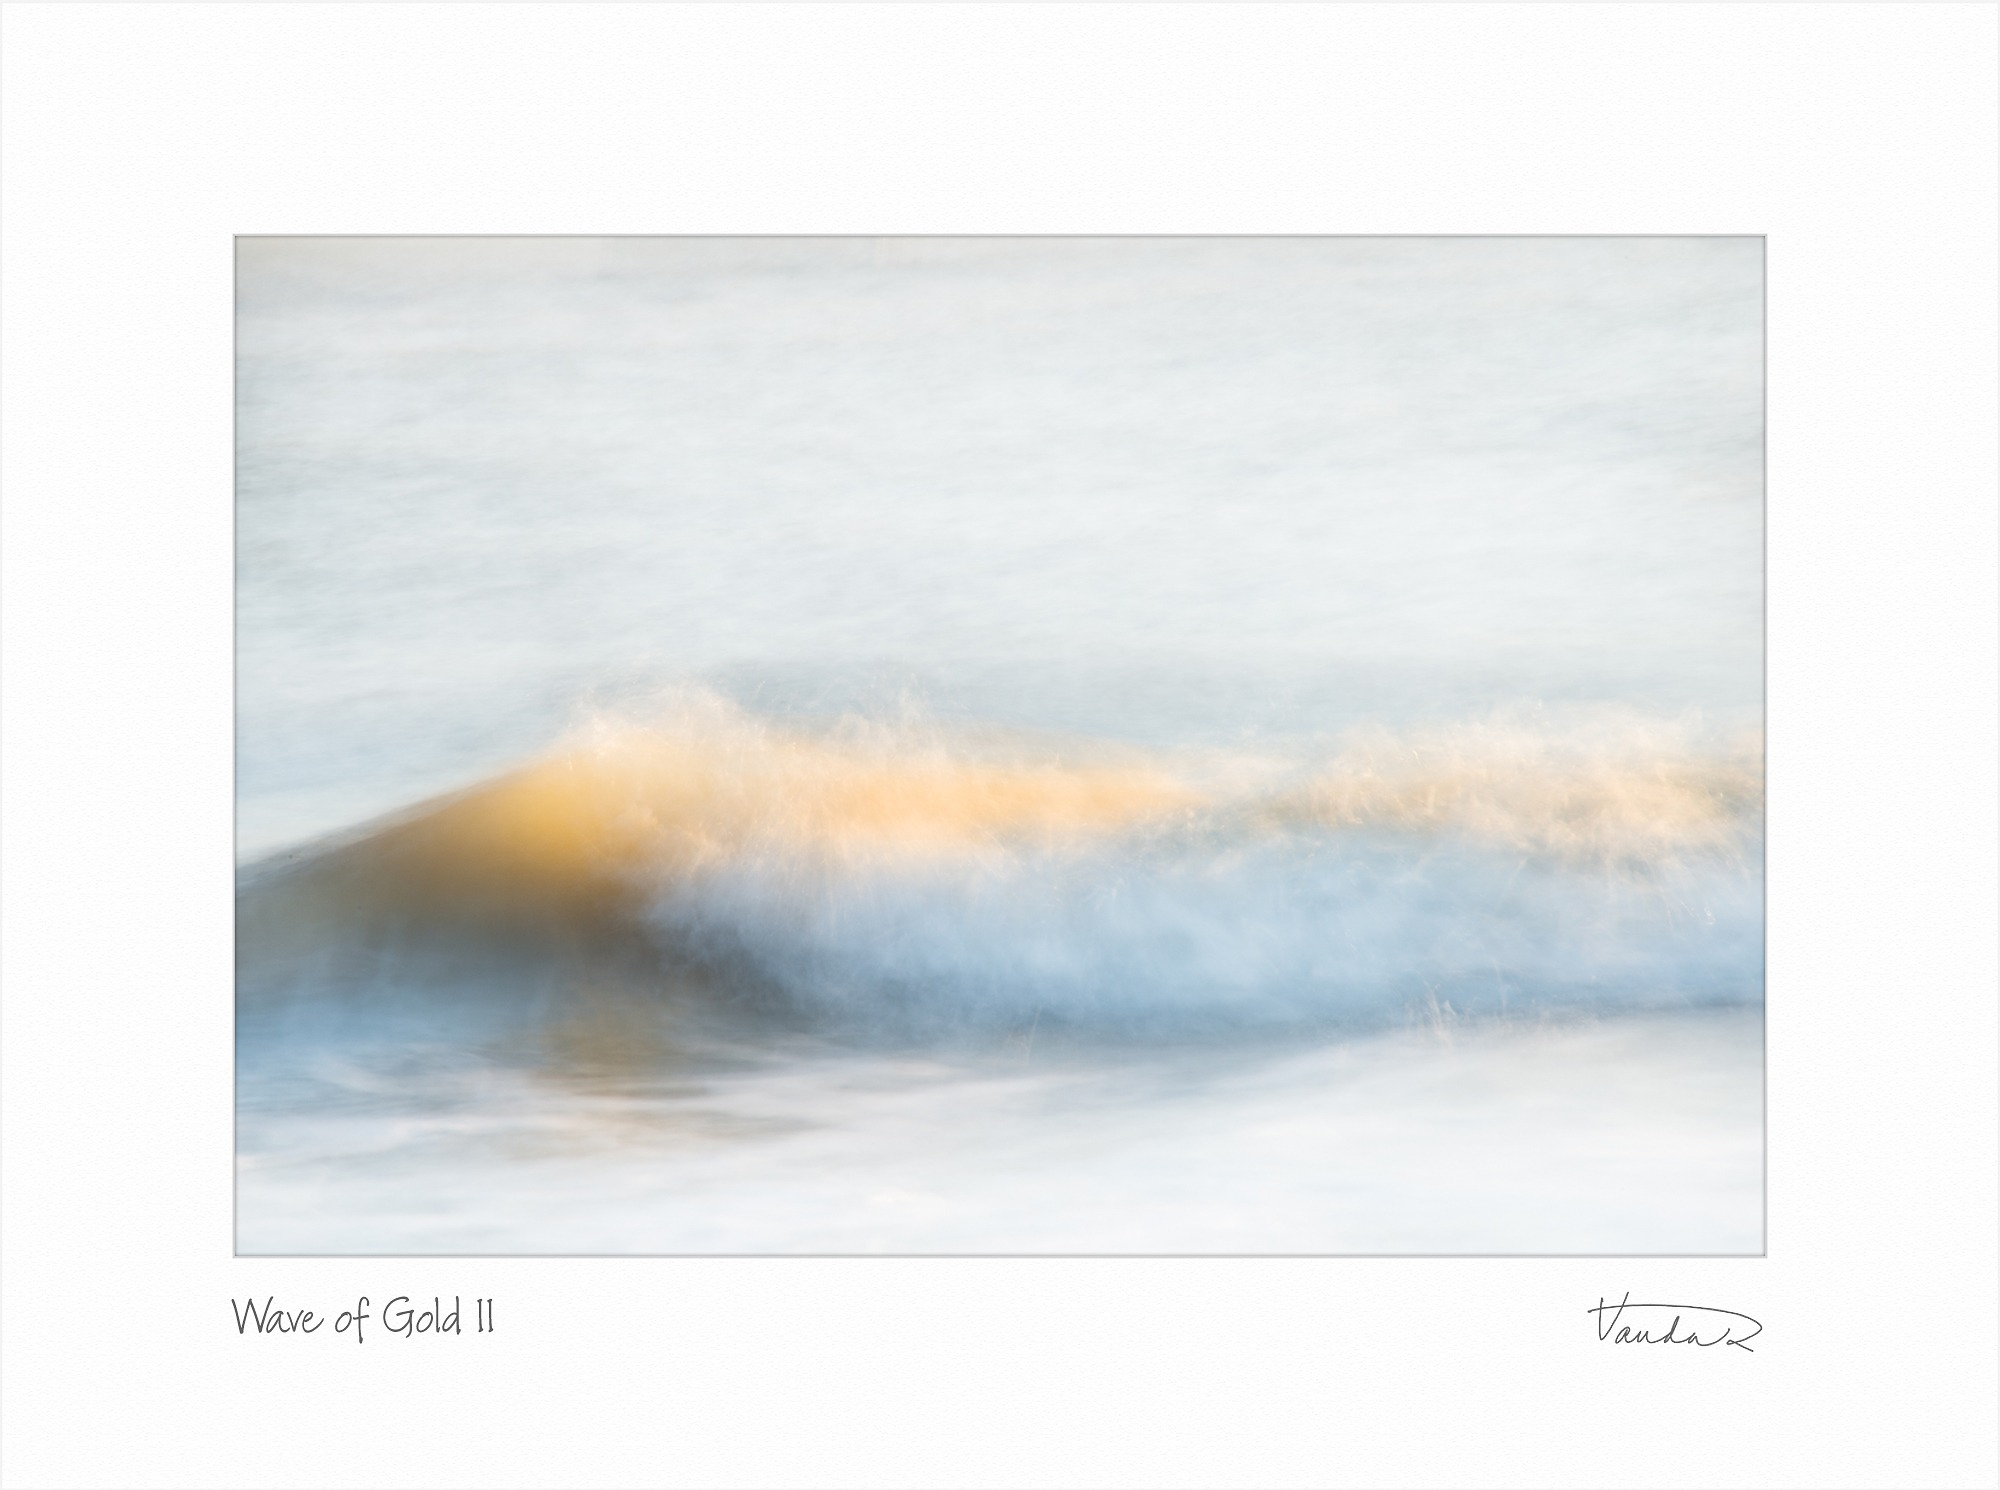 Wave of Gold II